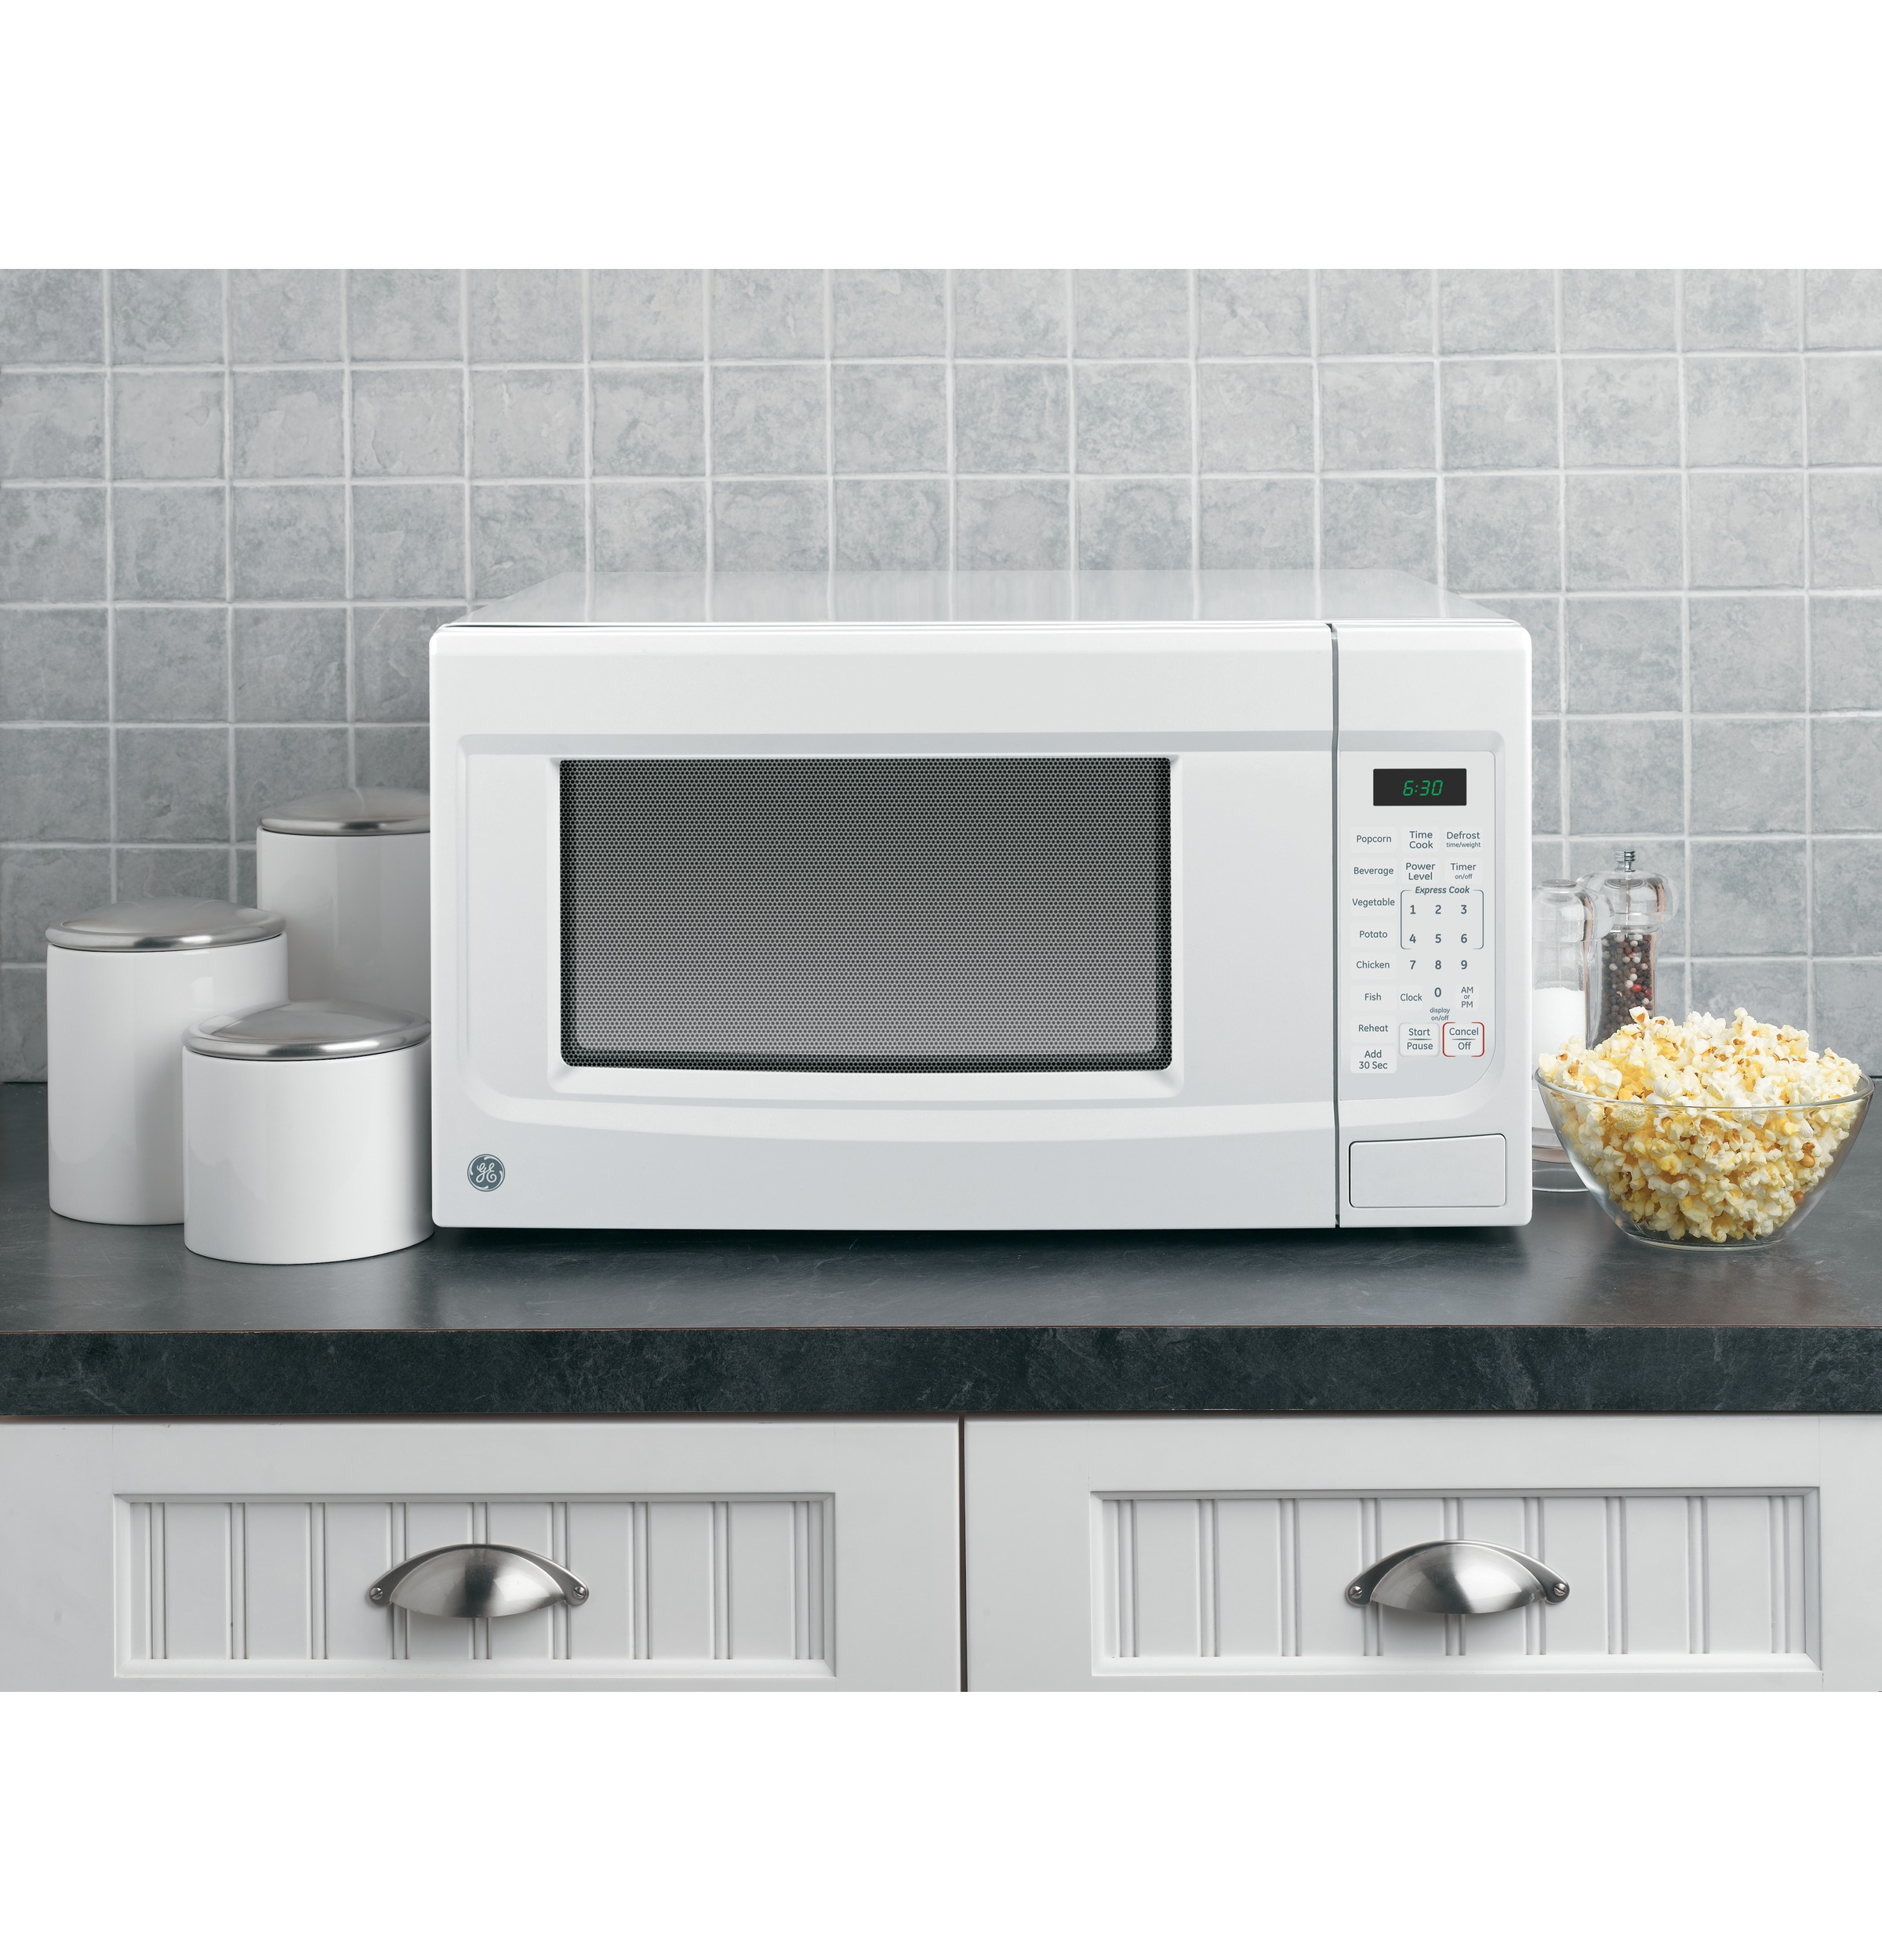 panasonic countertops t review induction worth microwave isn oven reviews getting countertop